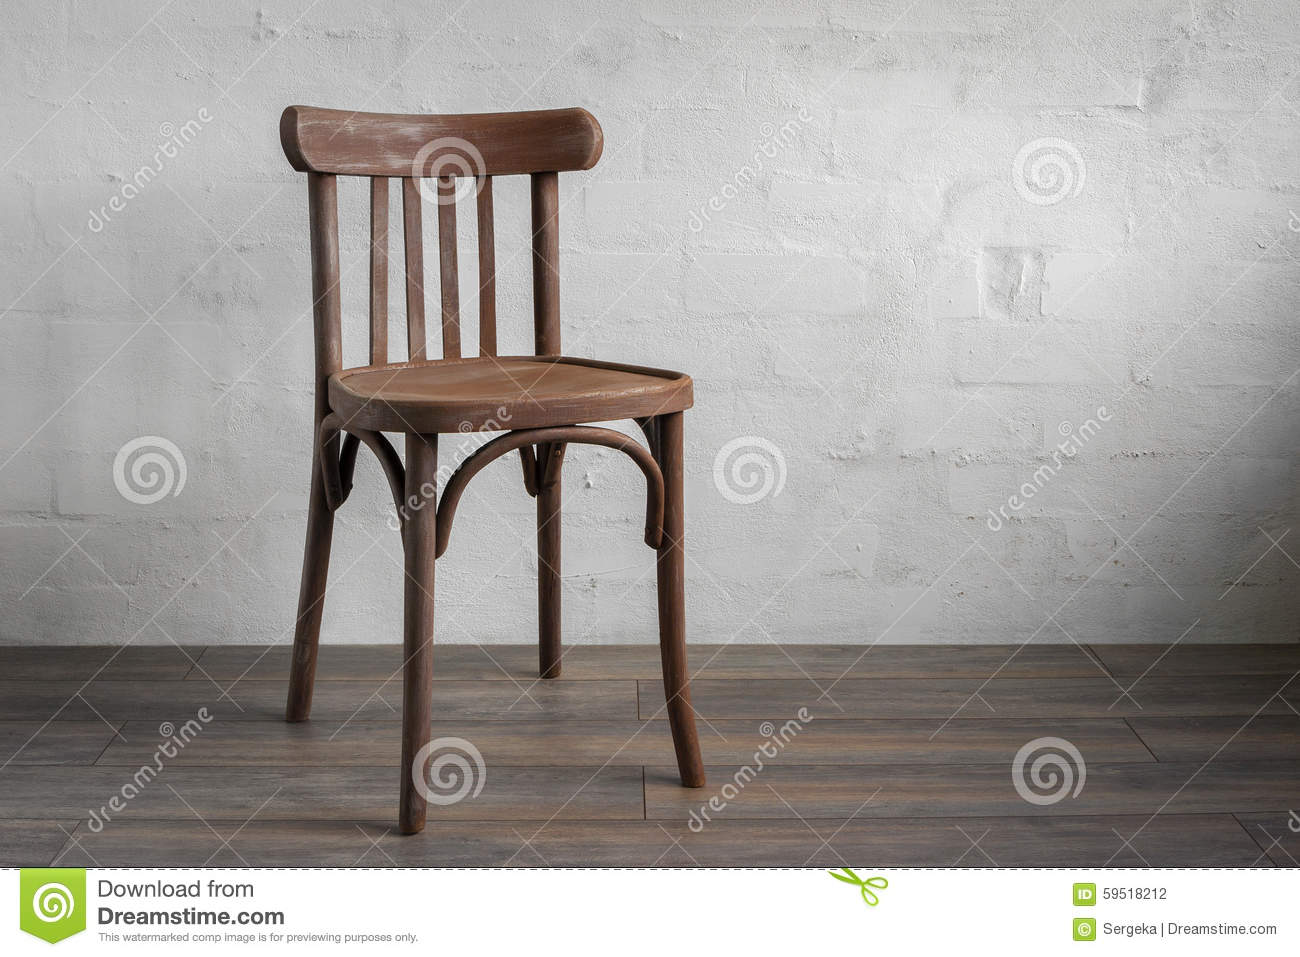 Amazing photo of Wooden Chair Stock Photo Image: 59518212 with #86A823 color and 1300x957 pixels